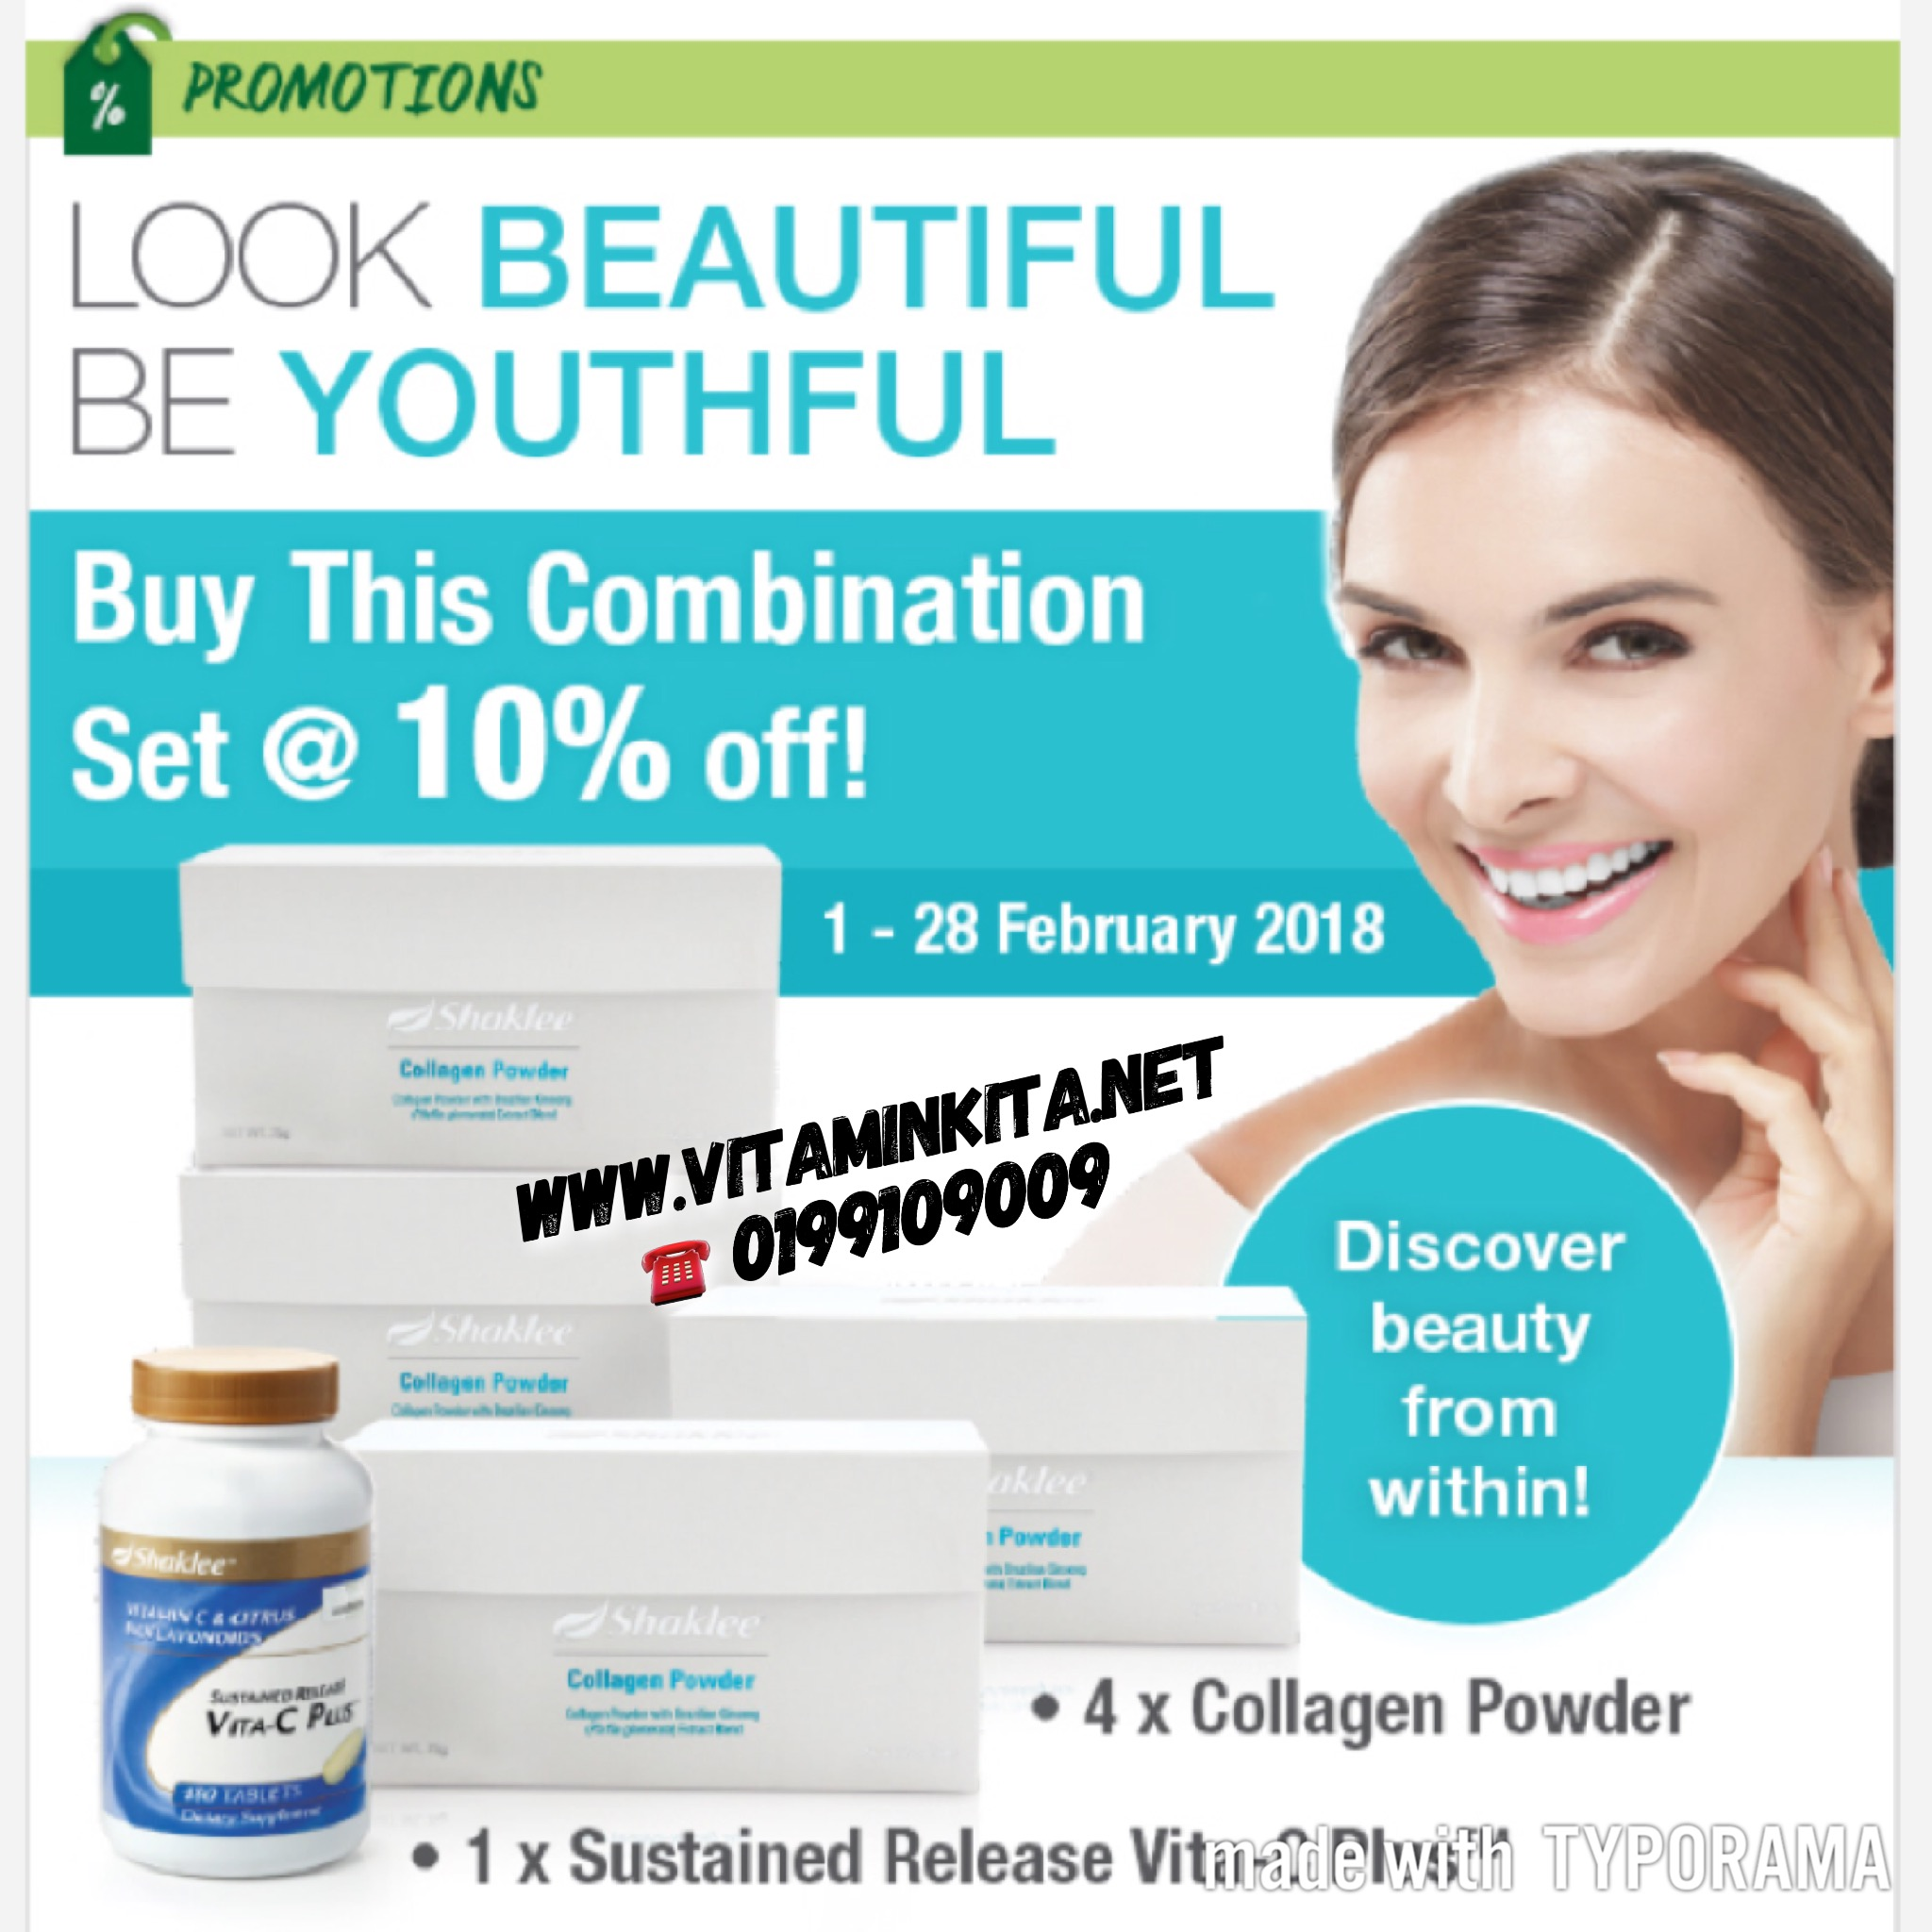 be youthful set